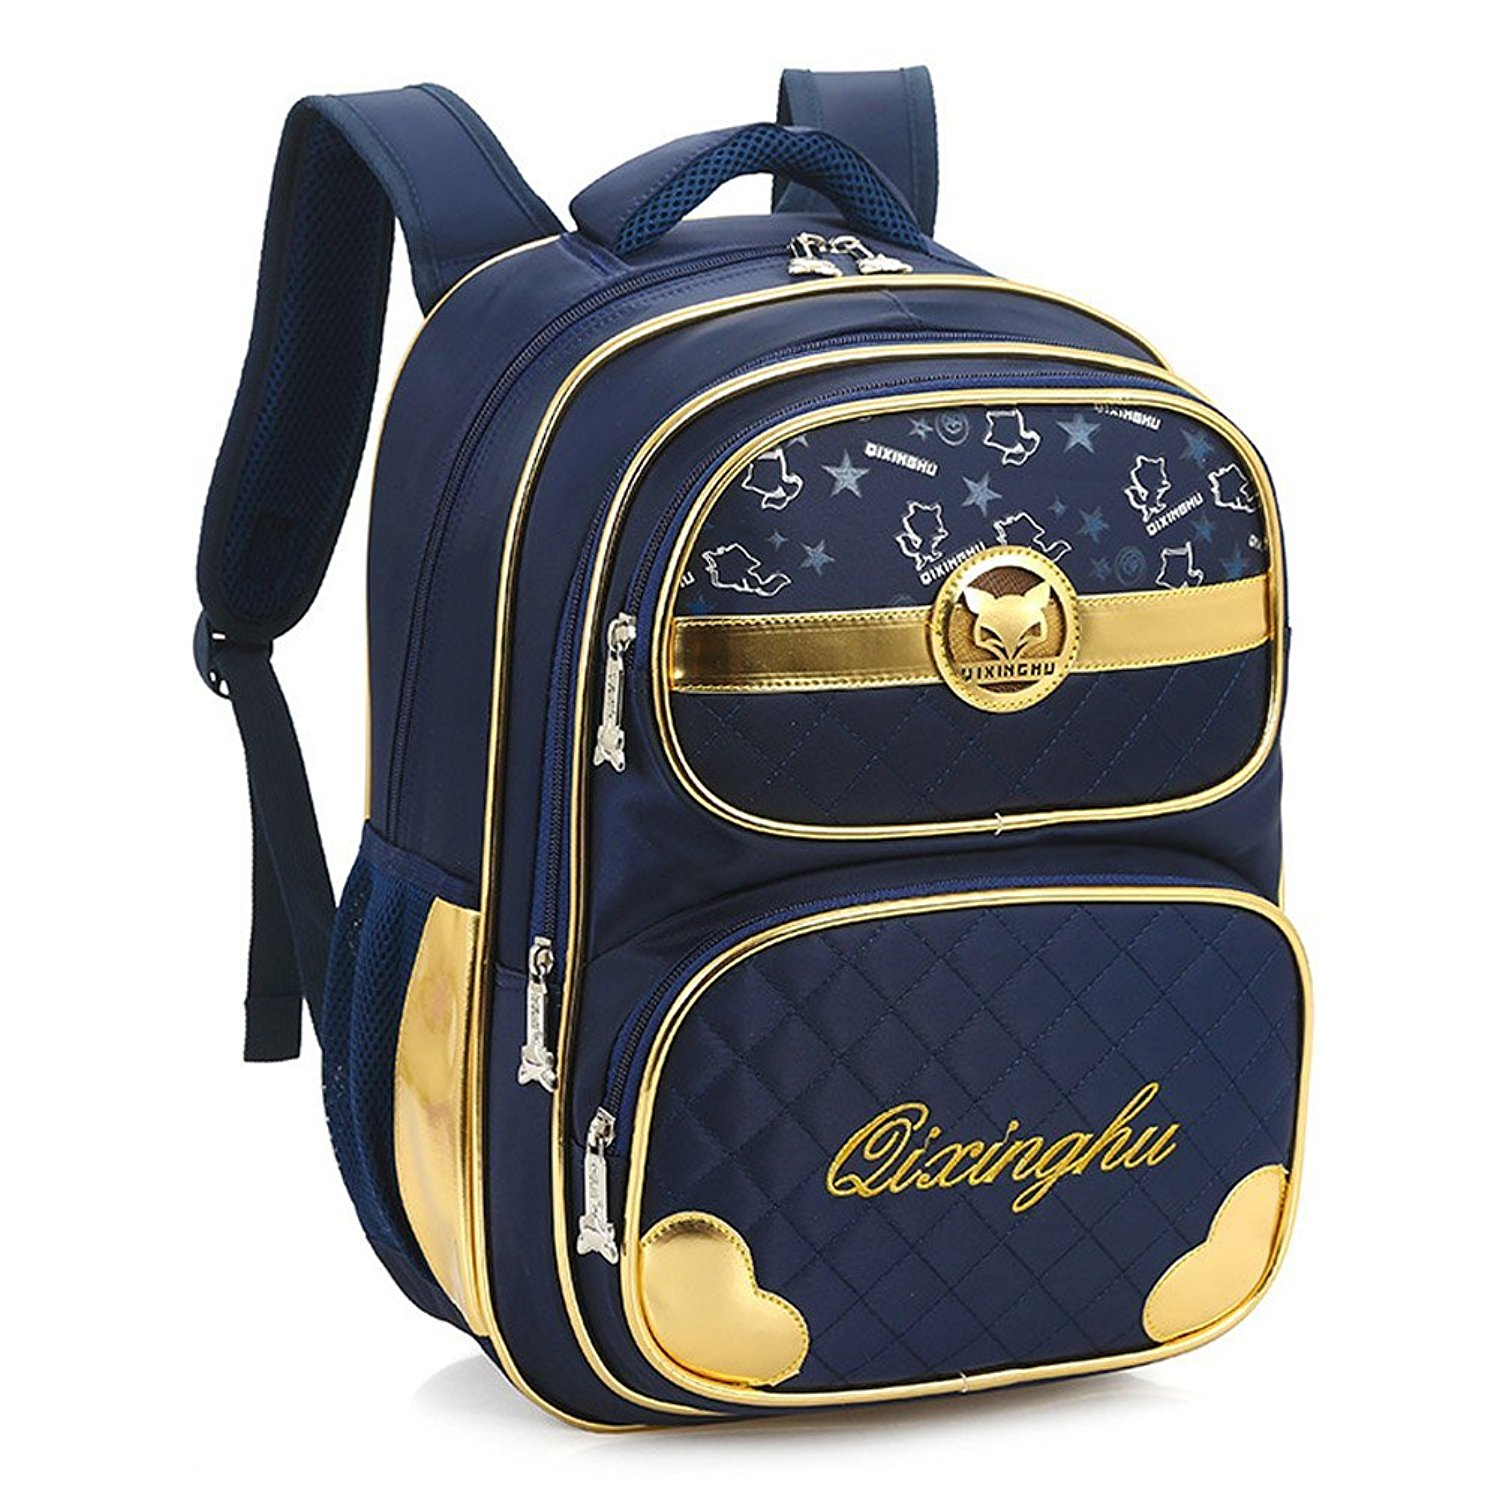 709281f48e Buy Dsinlare Boys Backpack Bookbags Cool Elementary School Kids Book ...